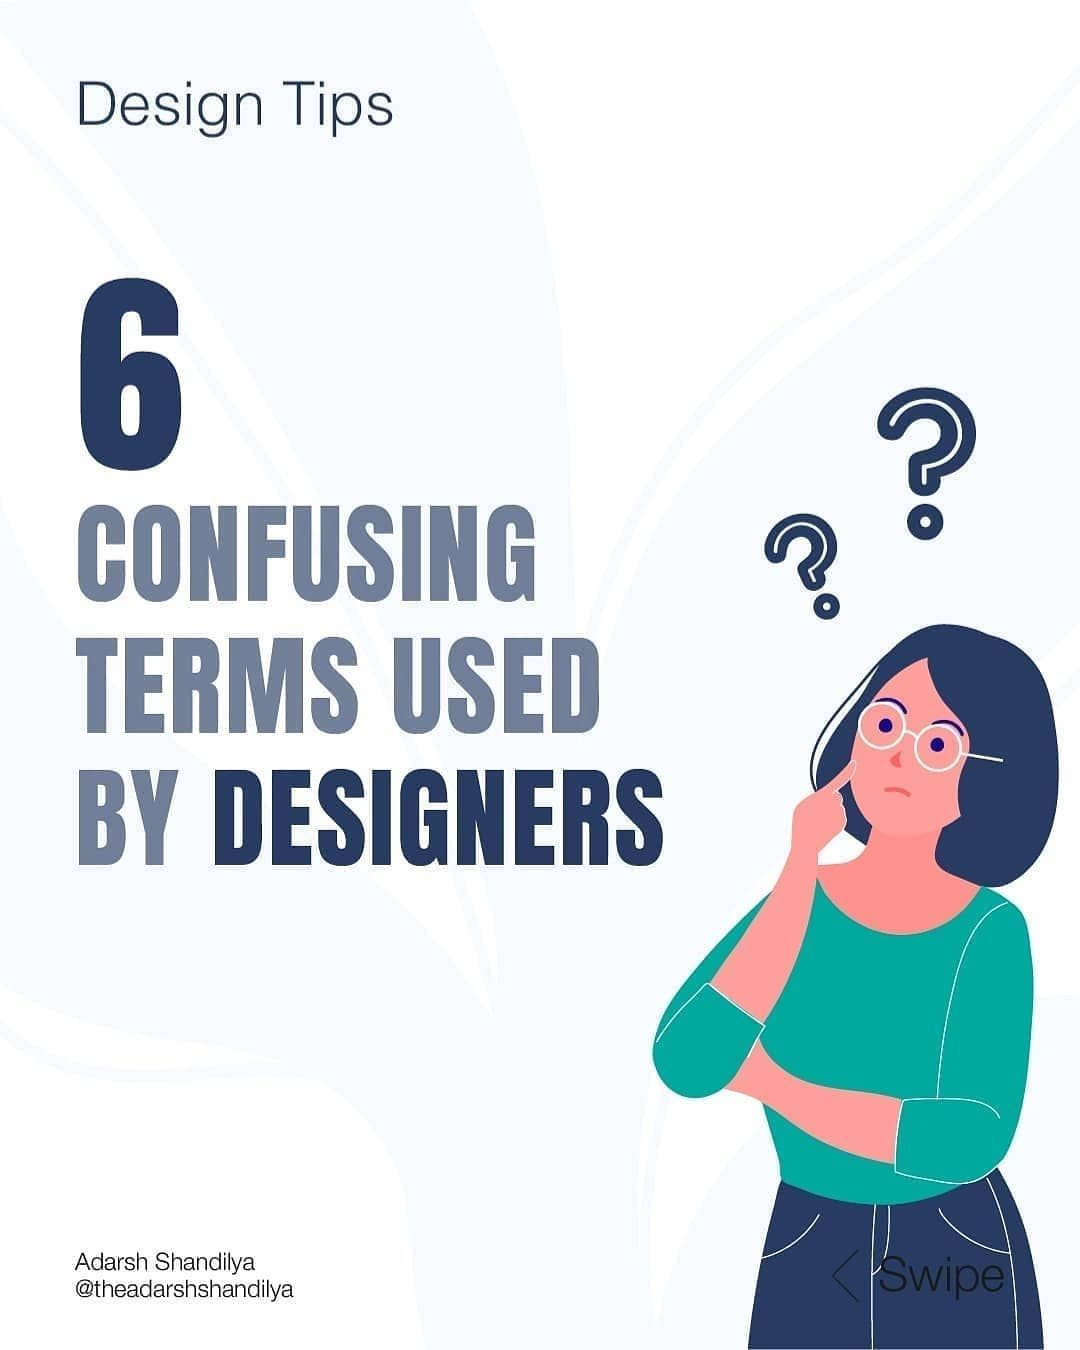 6 confusing terms  by designers